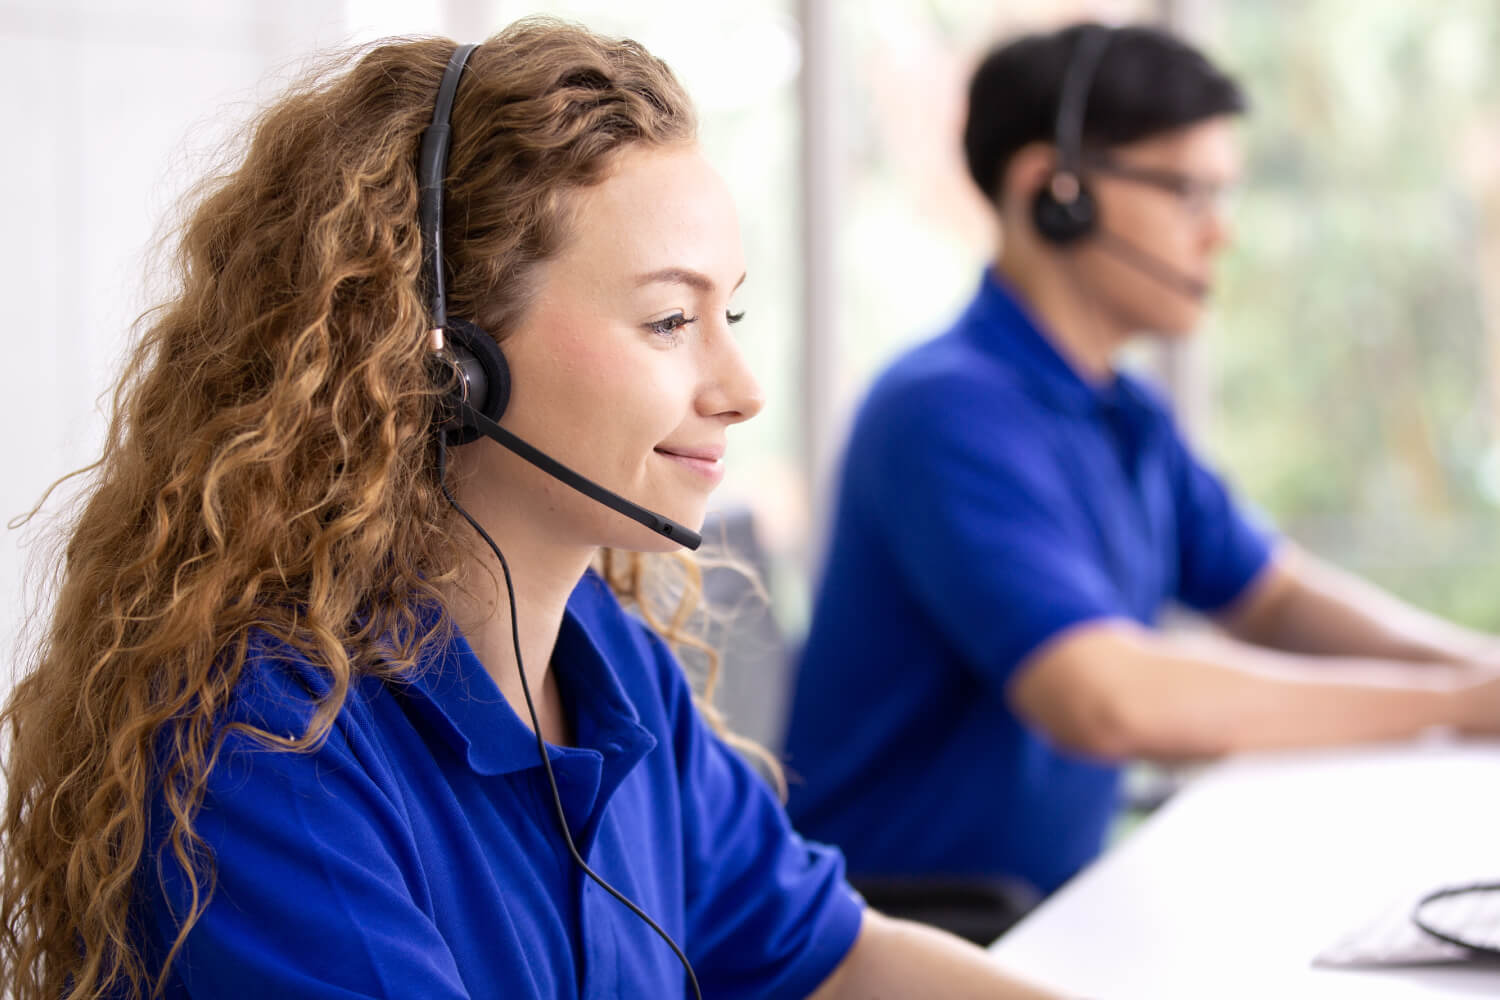 Get to Know These Common Customer Service Problems and Solutions